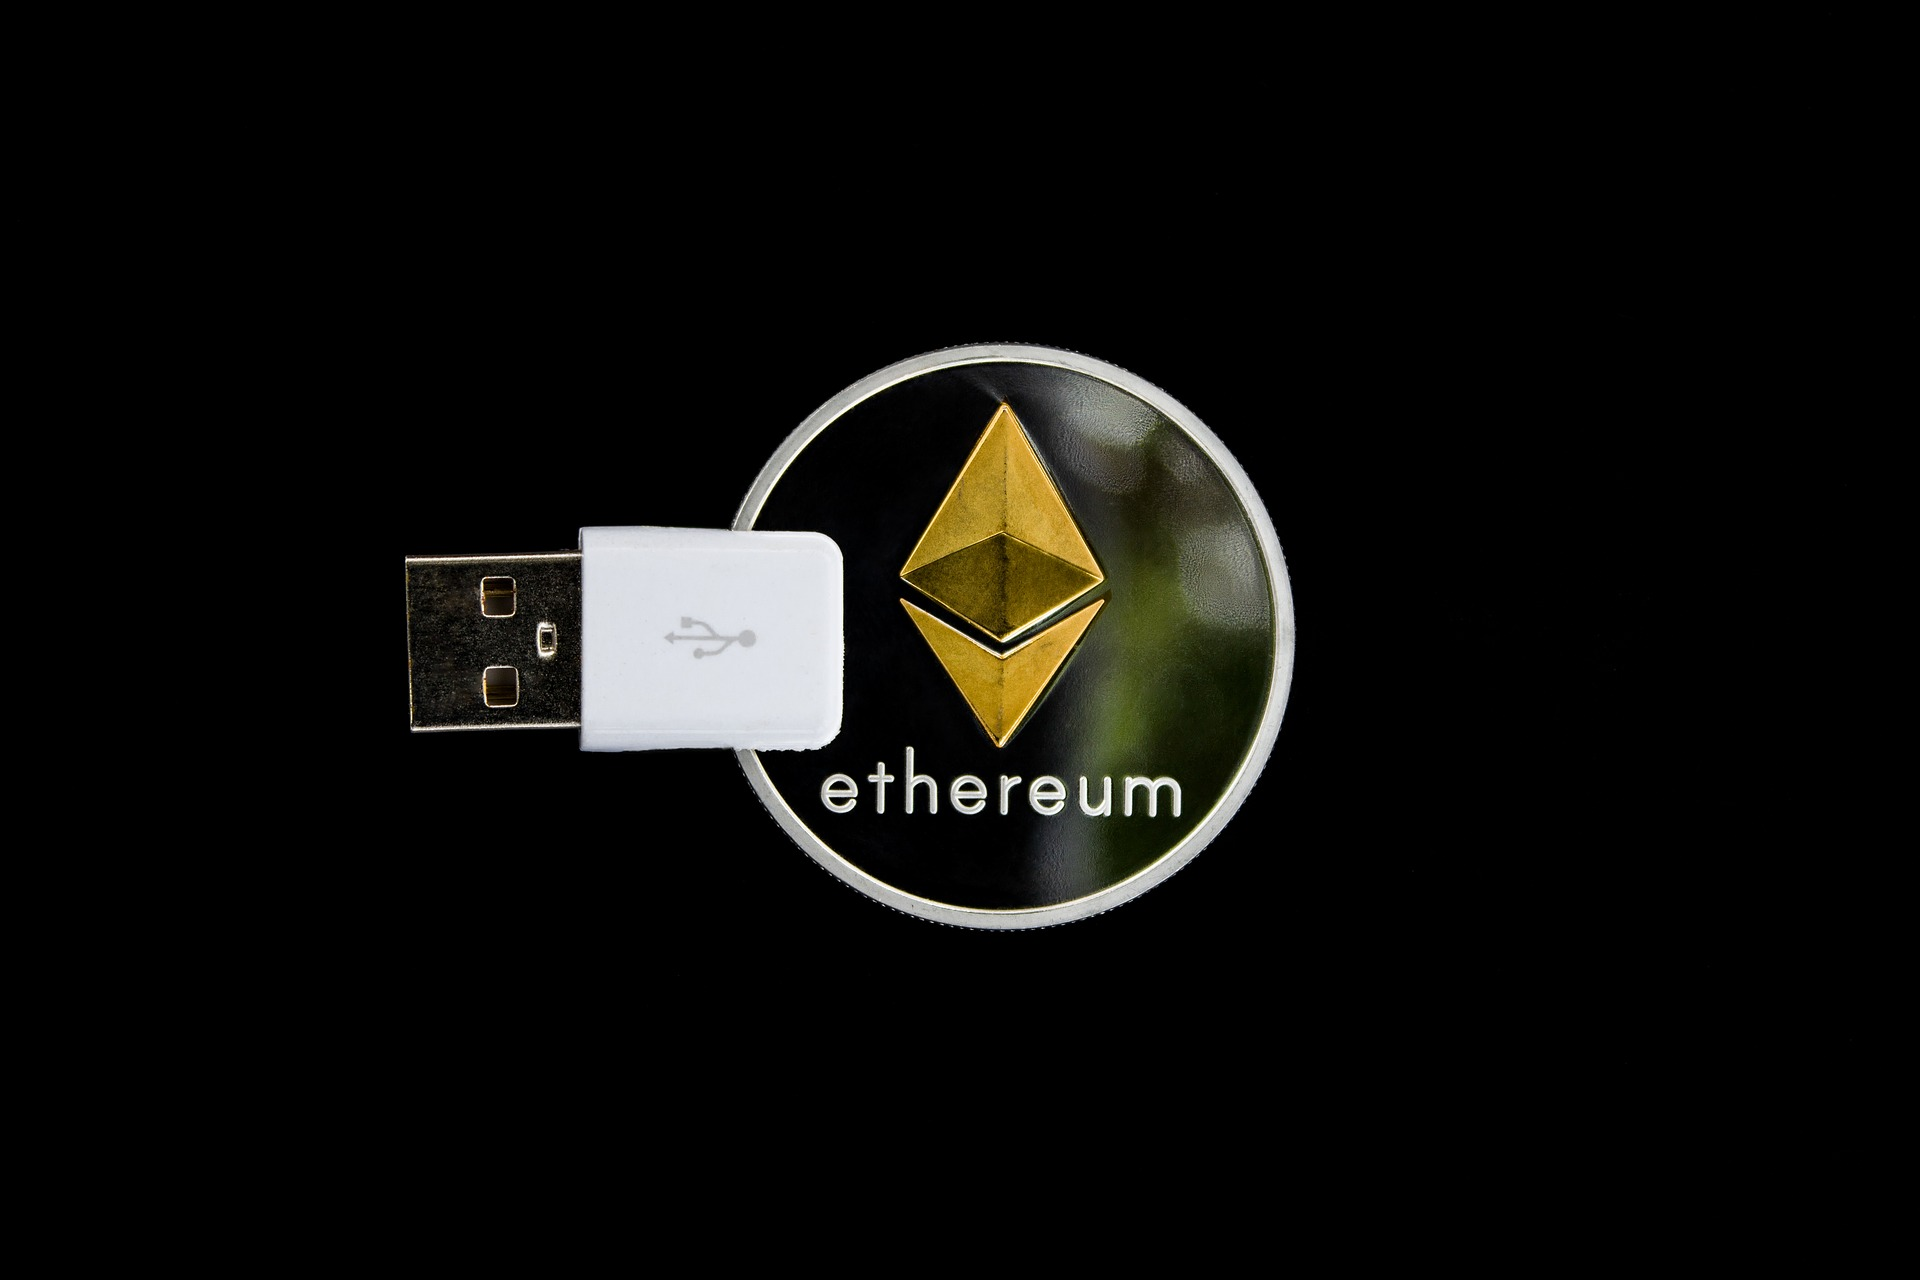 Ethereum (ETH) Hits $307 Amid Bullish Serenity, Grayscale News 13